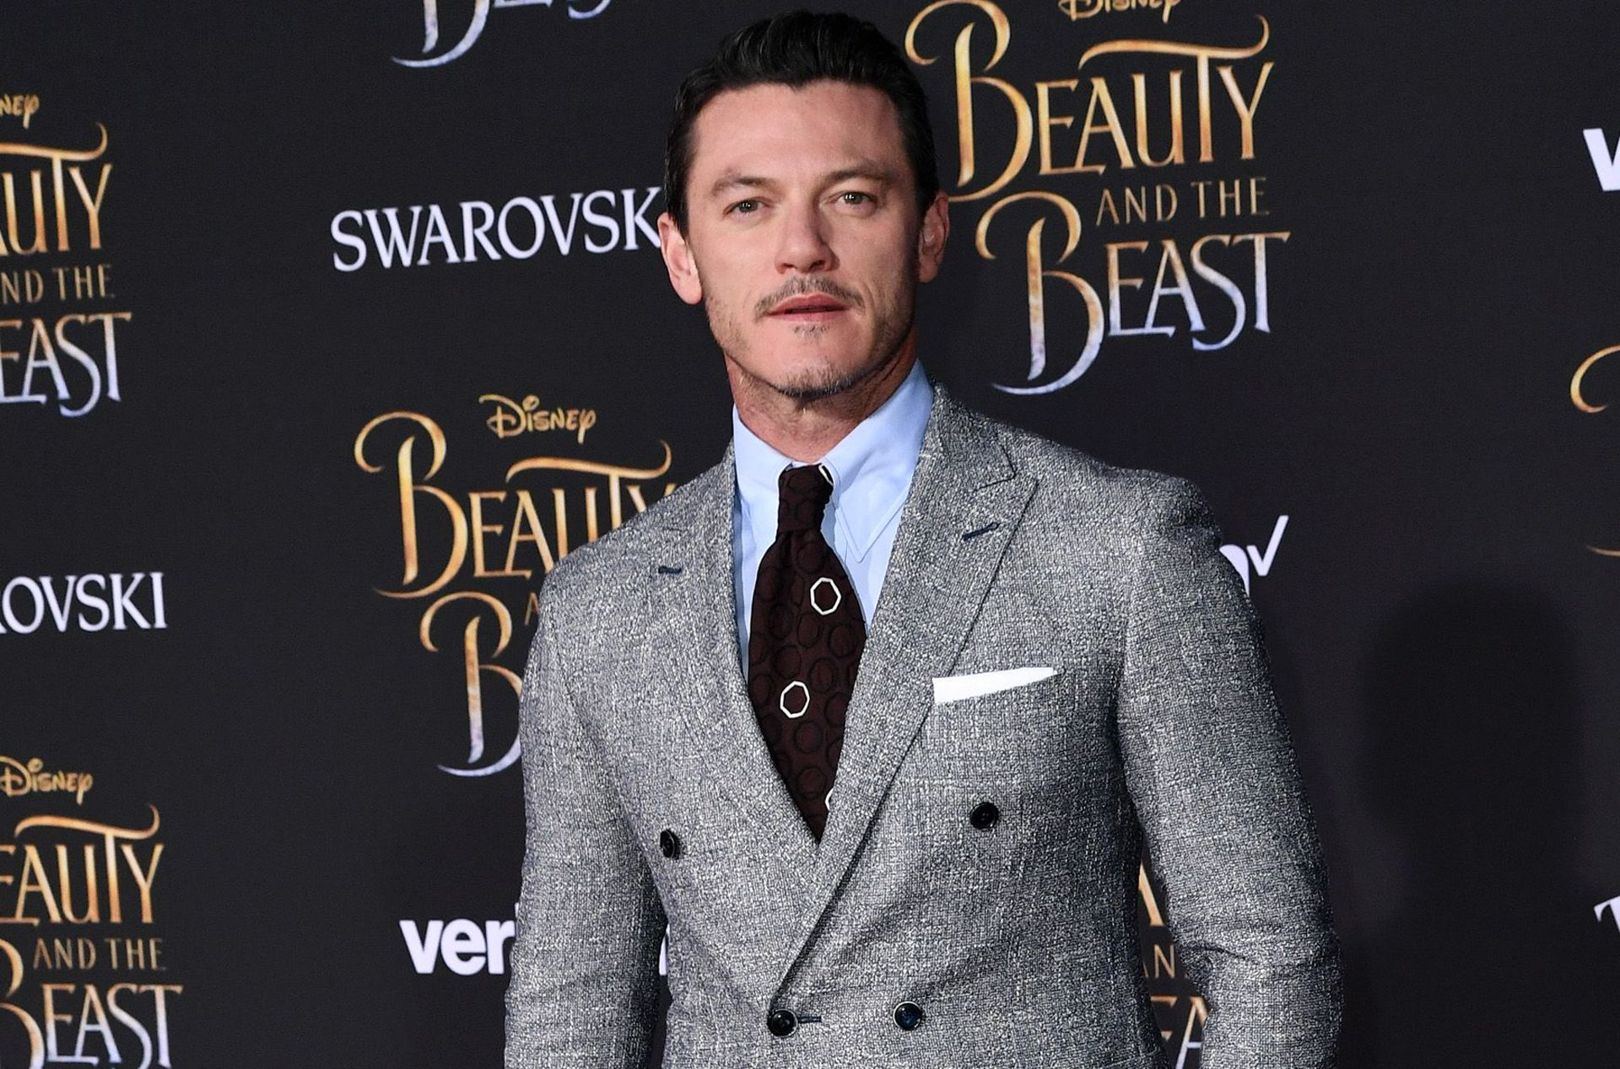 Beauty and the Beast star Luke Evans on -Beauty and the Beast star Luke Evans on his big break and being bullied at  school | British GQ-19